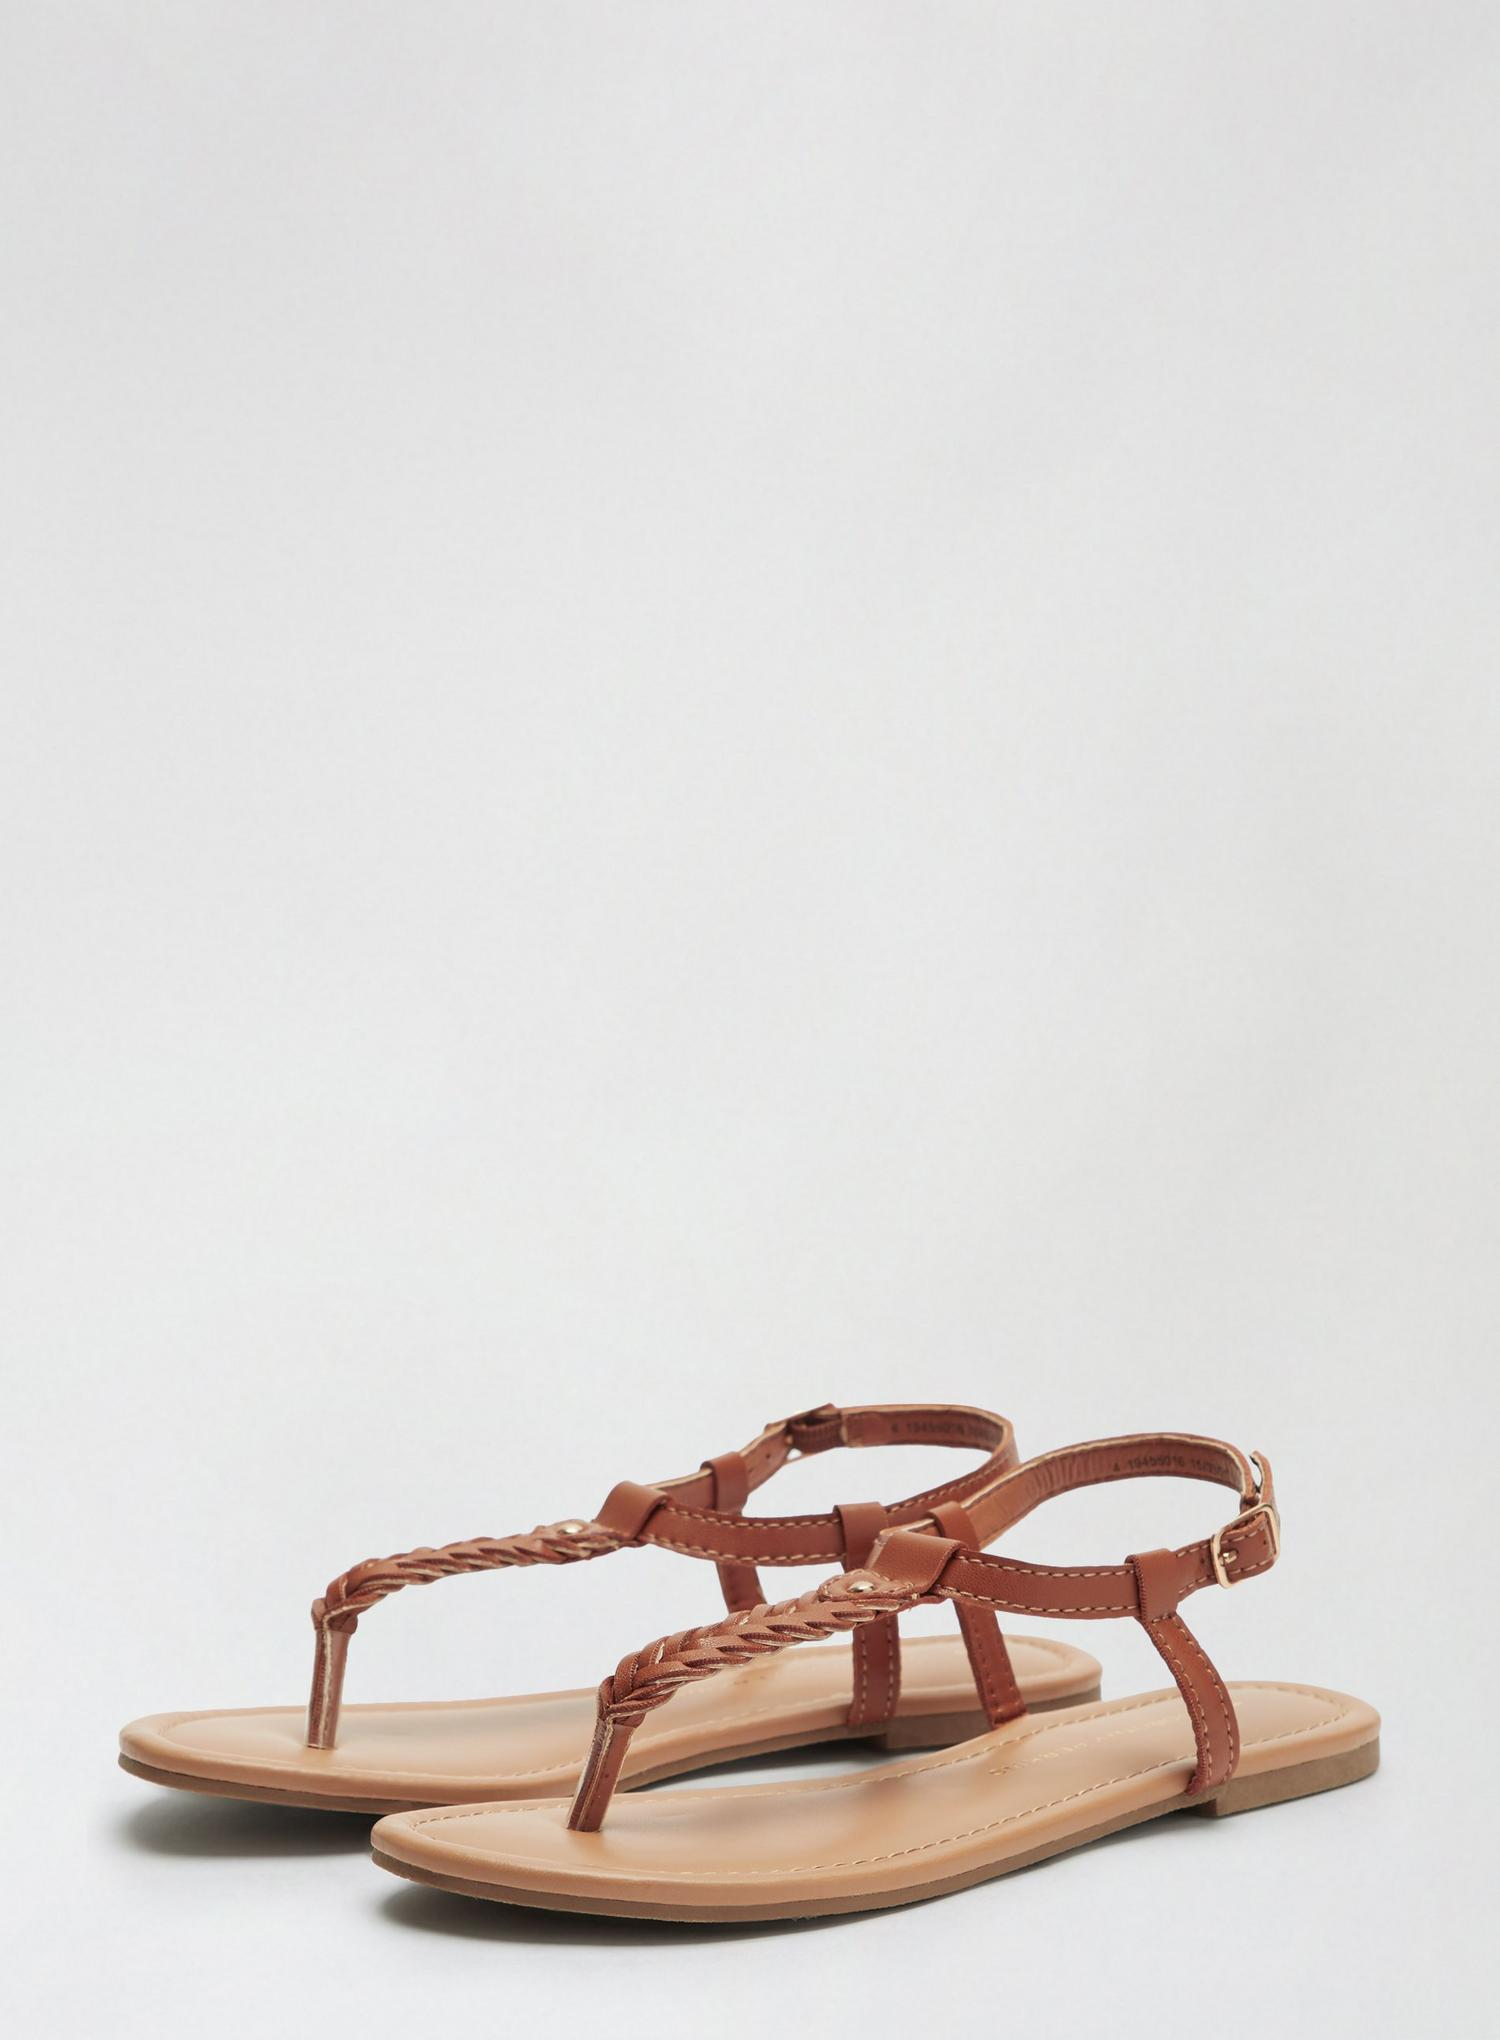 109 Tan Free Sandals image number 1